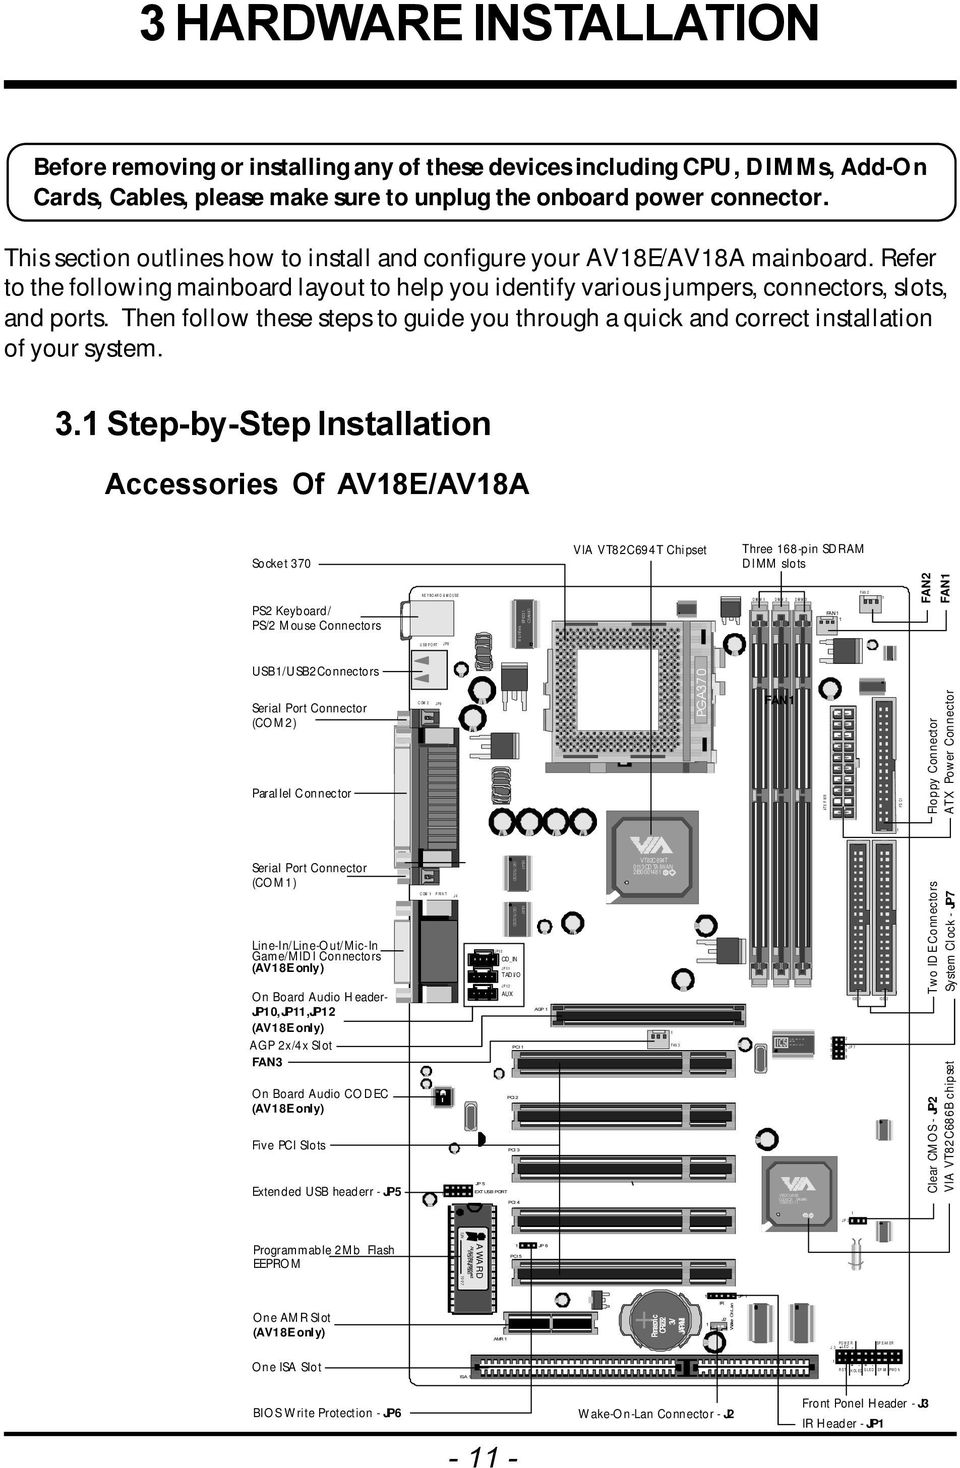 Then follow these steps to guide you through a quick and correct installation of your system. 3.